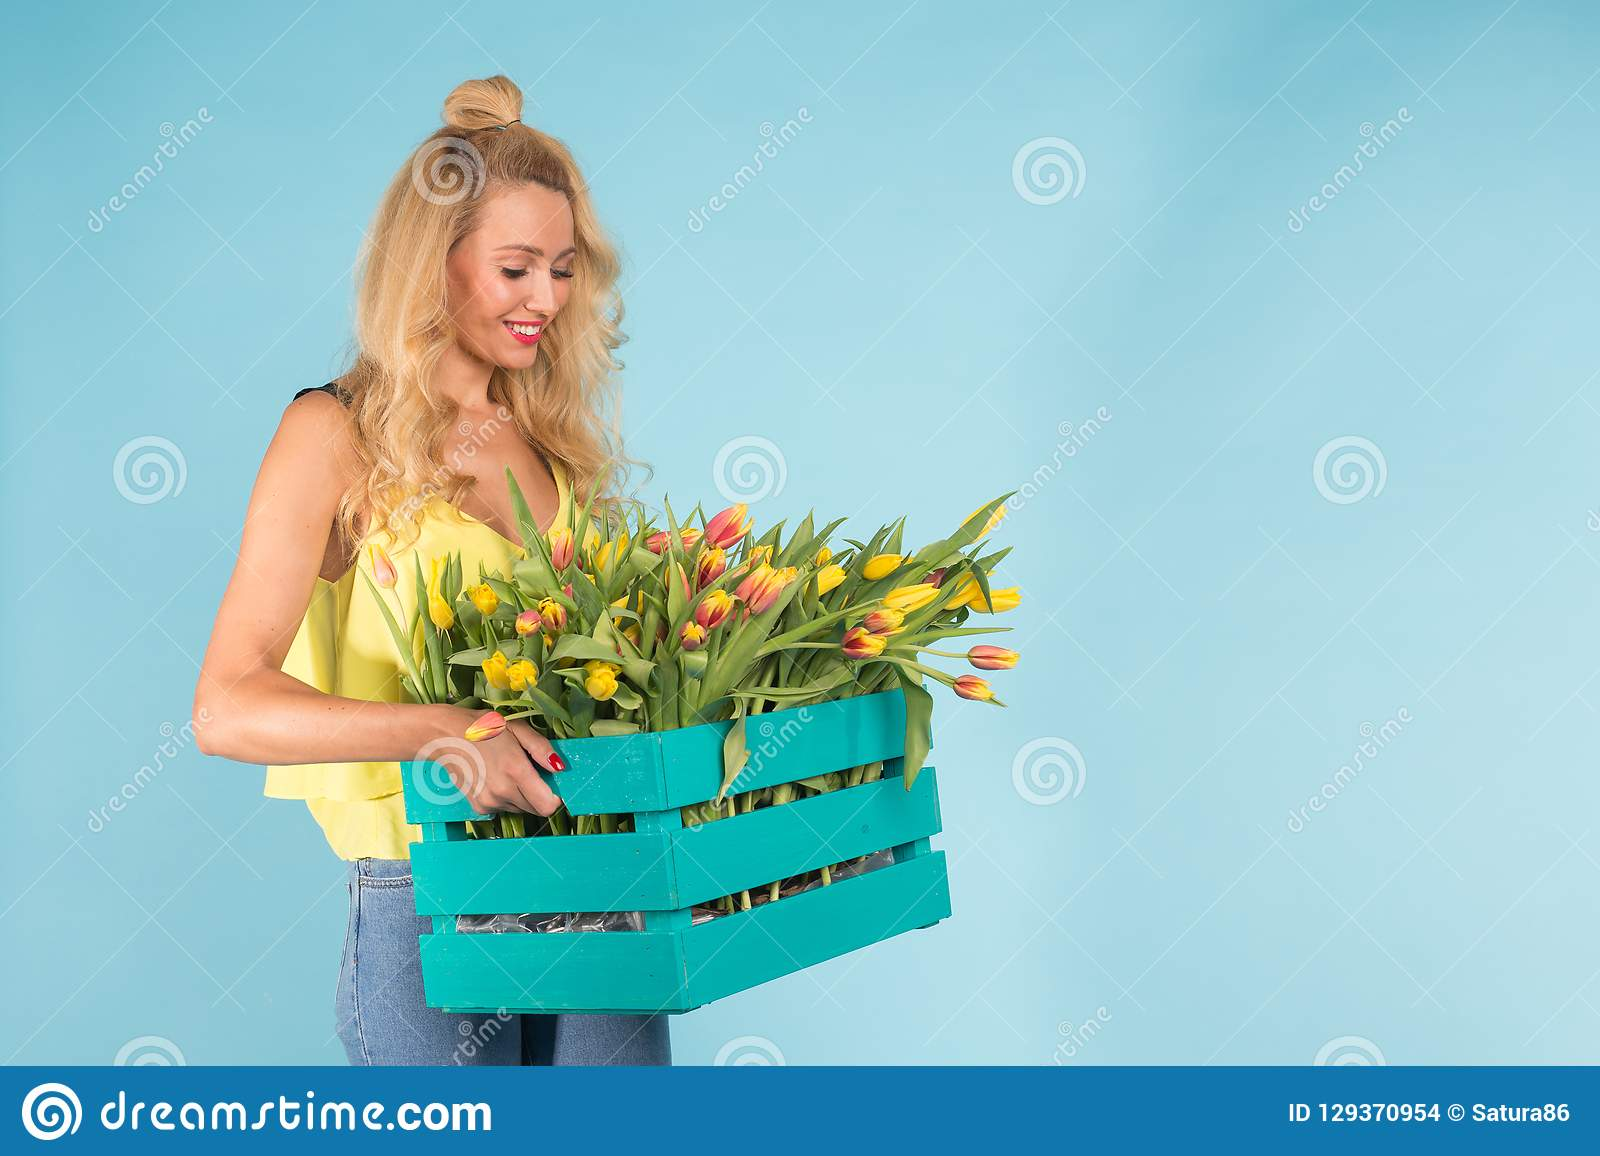 Cheerful young blonde woman florist with box of tulips over blue background with copy space